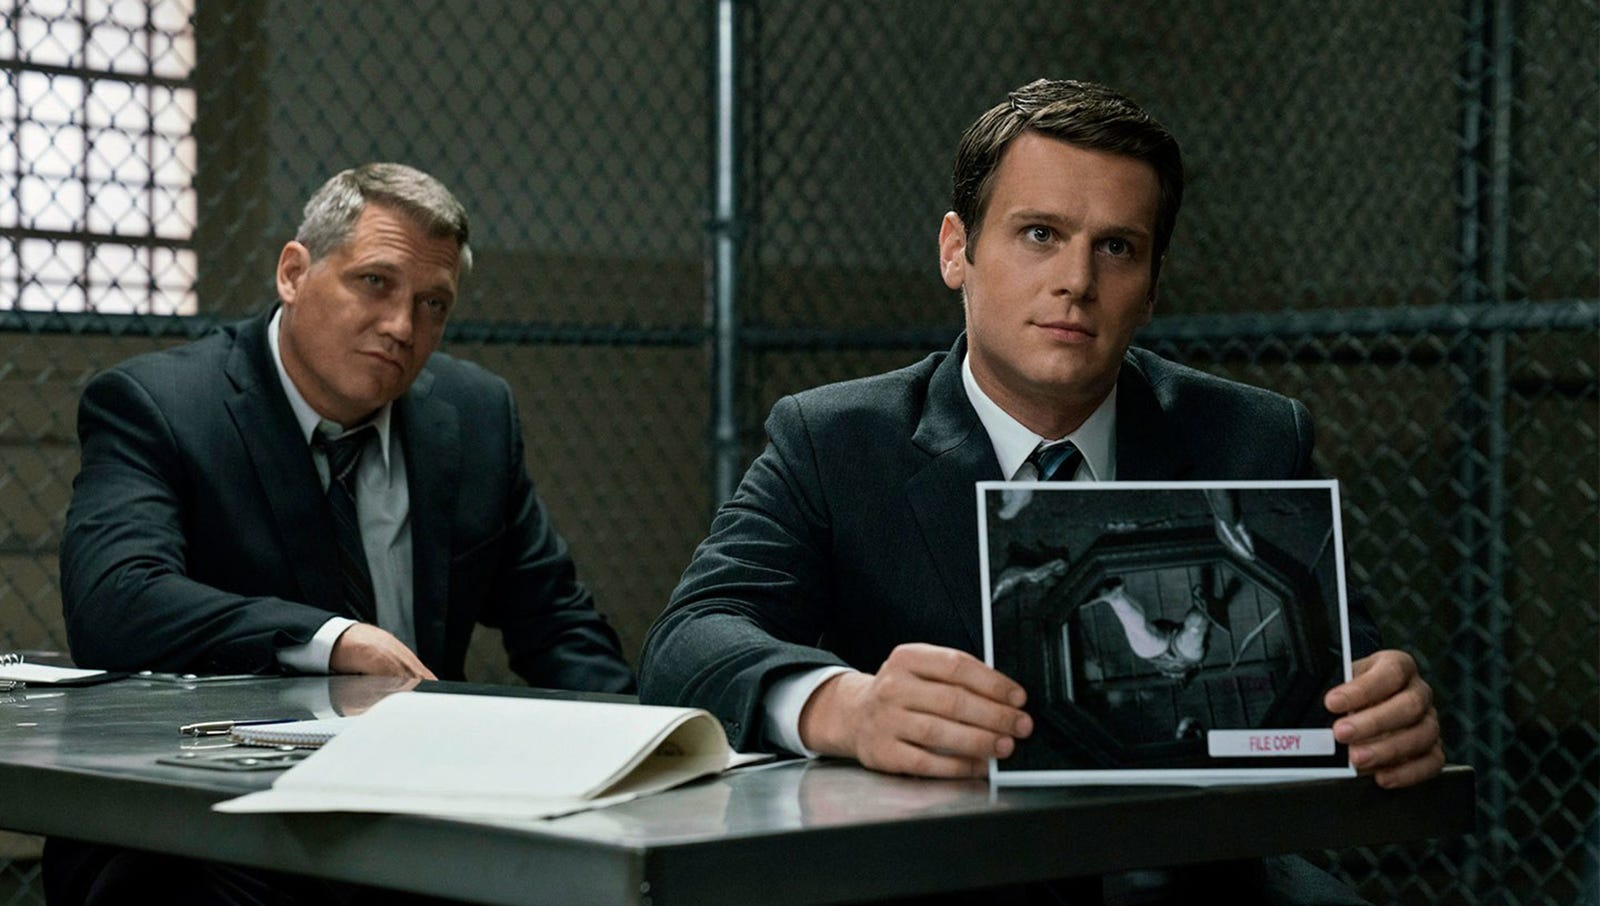 Mindhunter: This Netflix drama about the early days of the FBI's Behavioral Analysis Unit deftly handed serial killers the recognition they so deeply crave